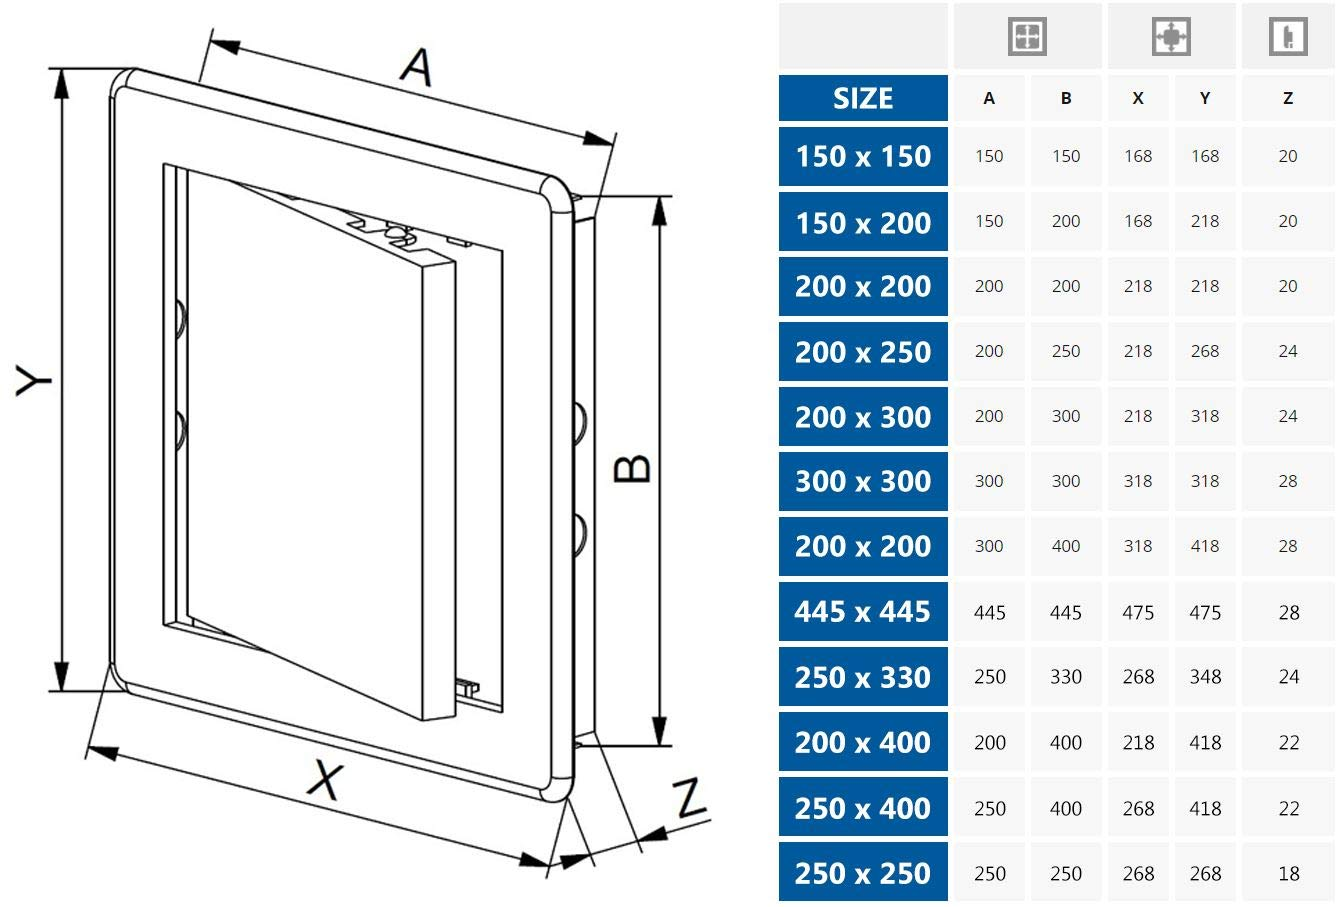 Access Panel 300x400mm (12x16inch) White ABS Plastic by Awenta